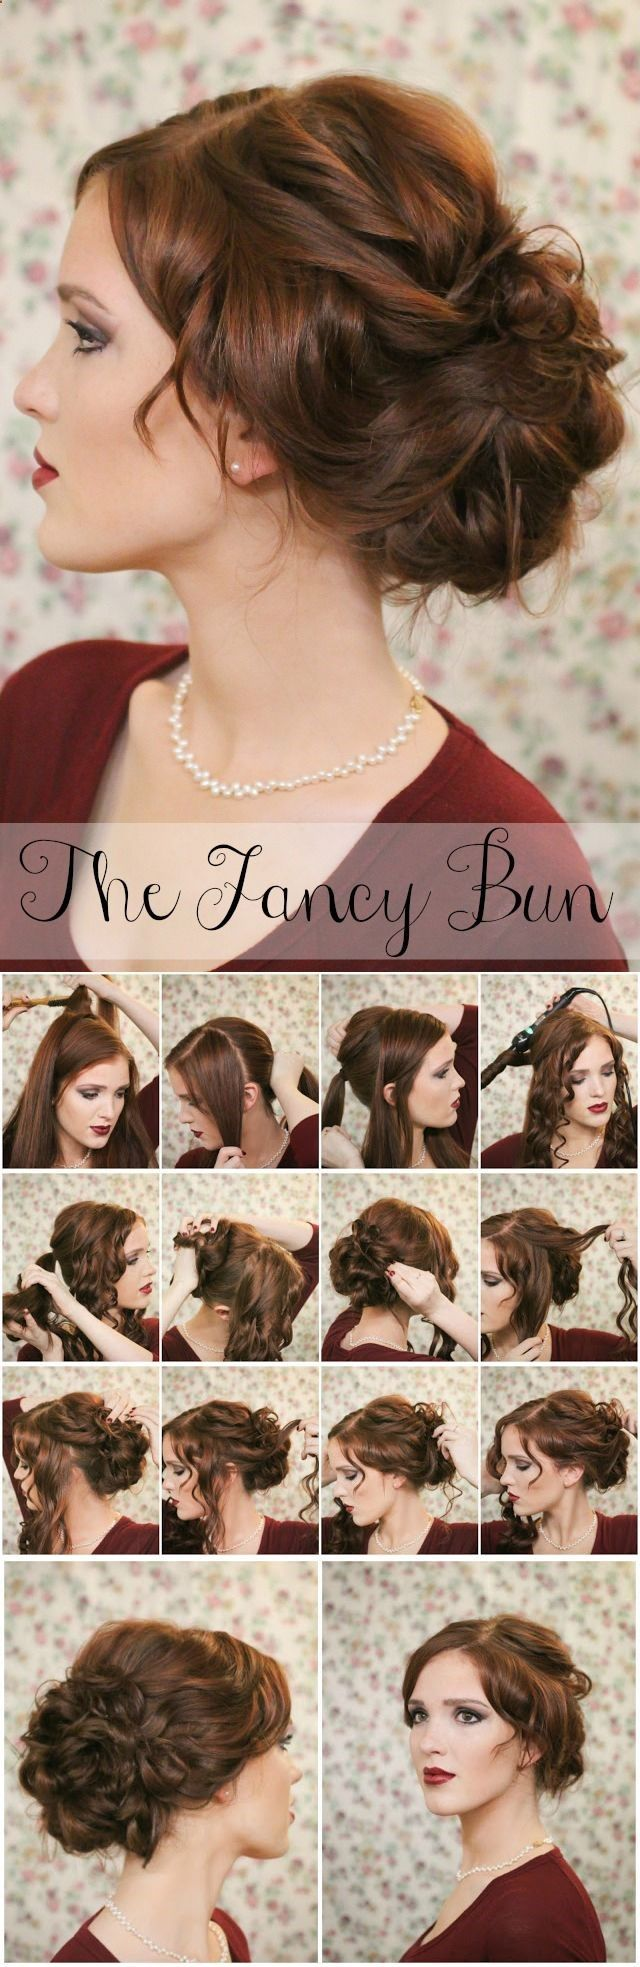 Super Easy Knotted Bun Updo and Simple Bun Hairstyle Tutorials-great wedding up-do! Wish Id known about this one earlier!